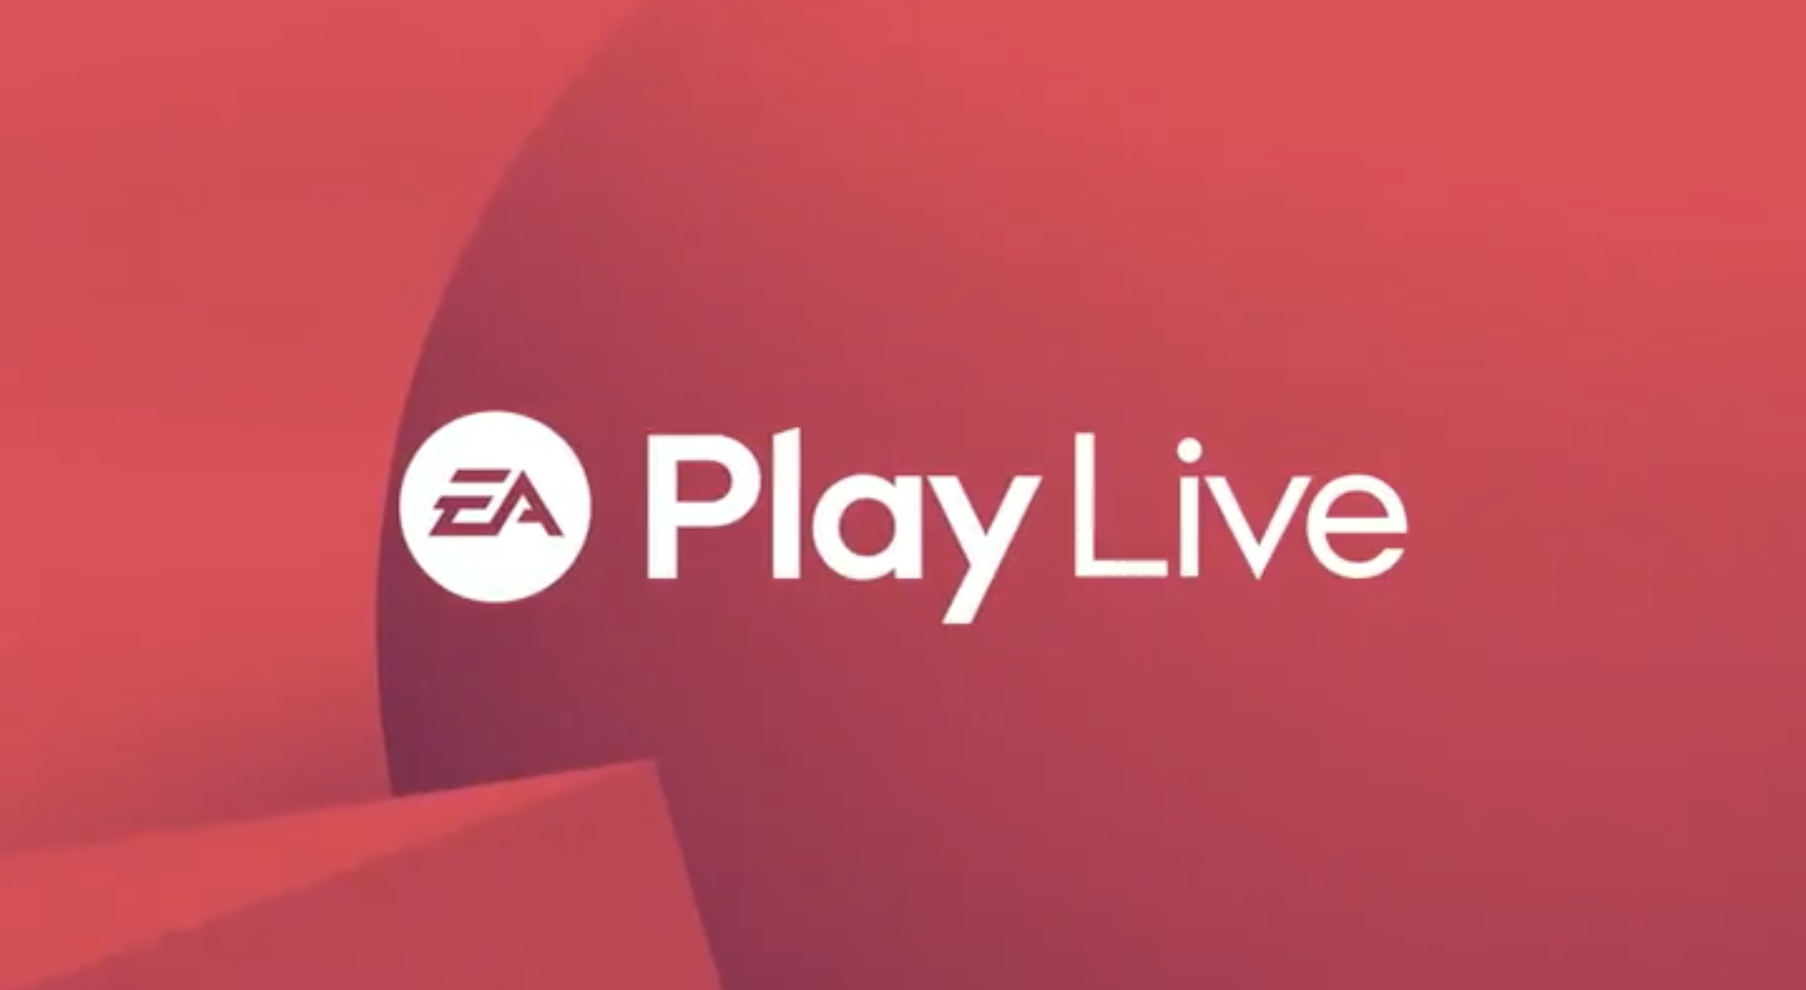 Watch EA Play Live with us starting at 6:40PM ET | DeviceDaily.com